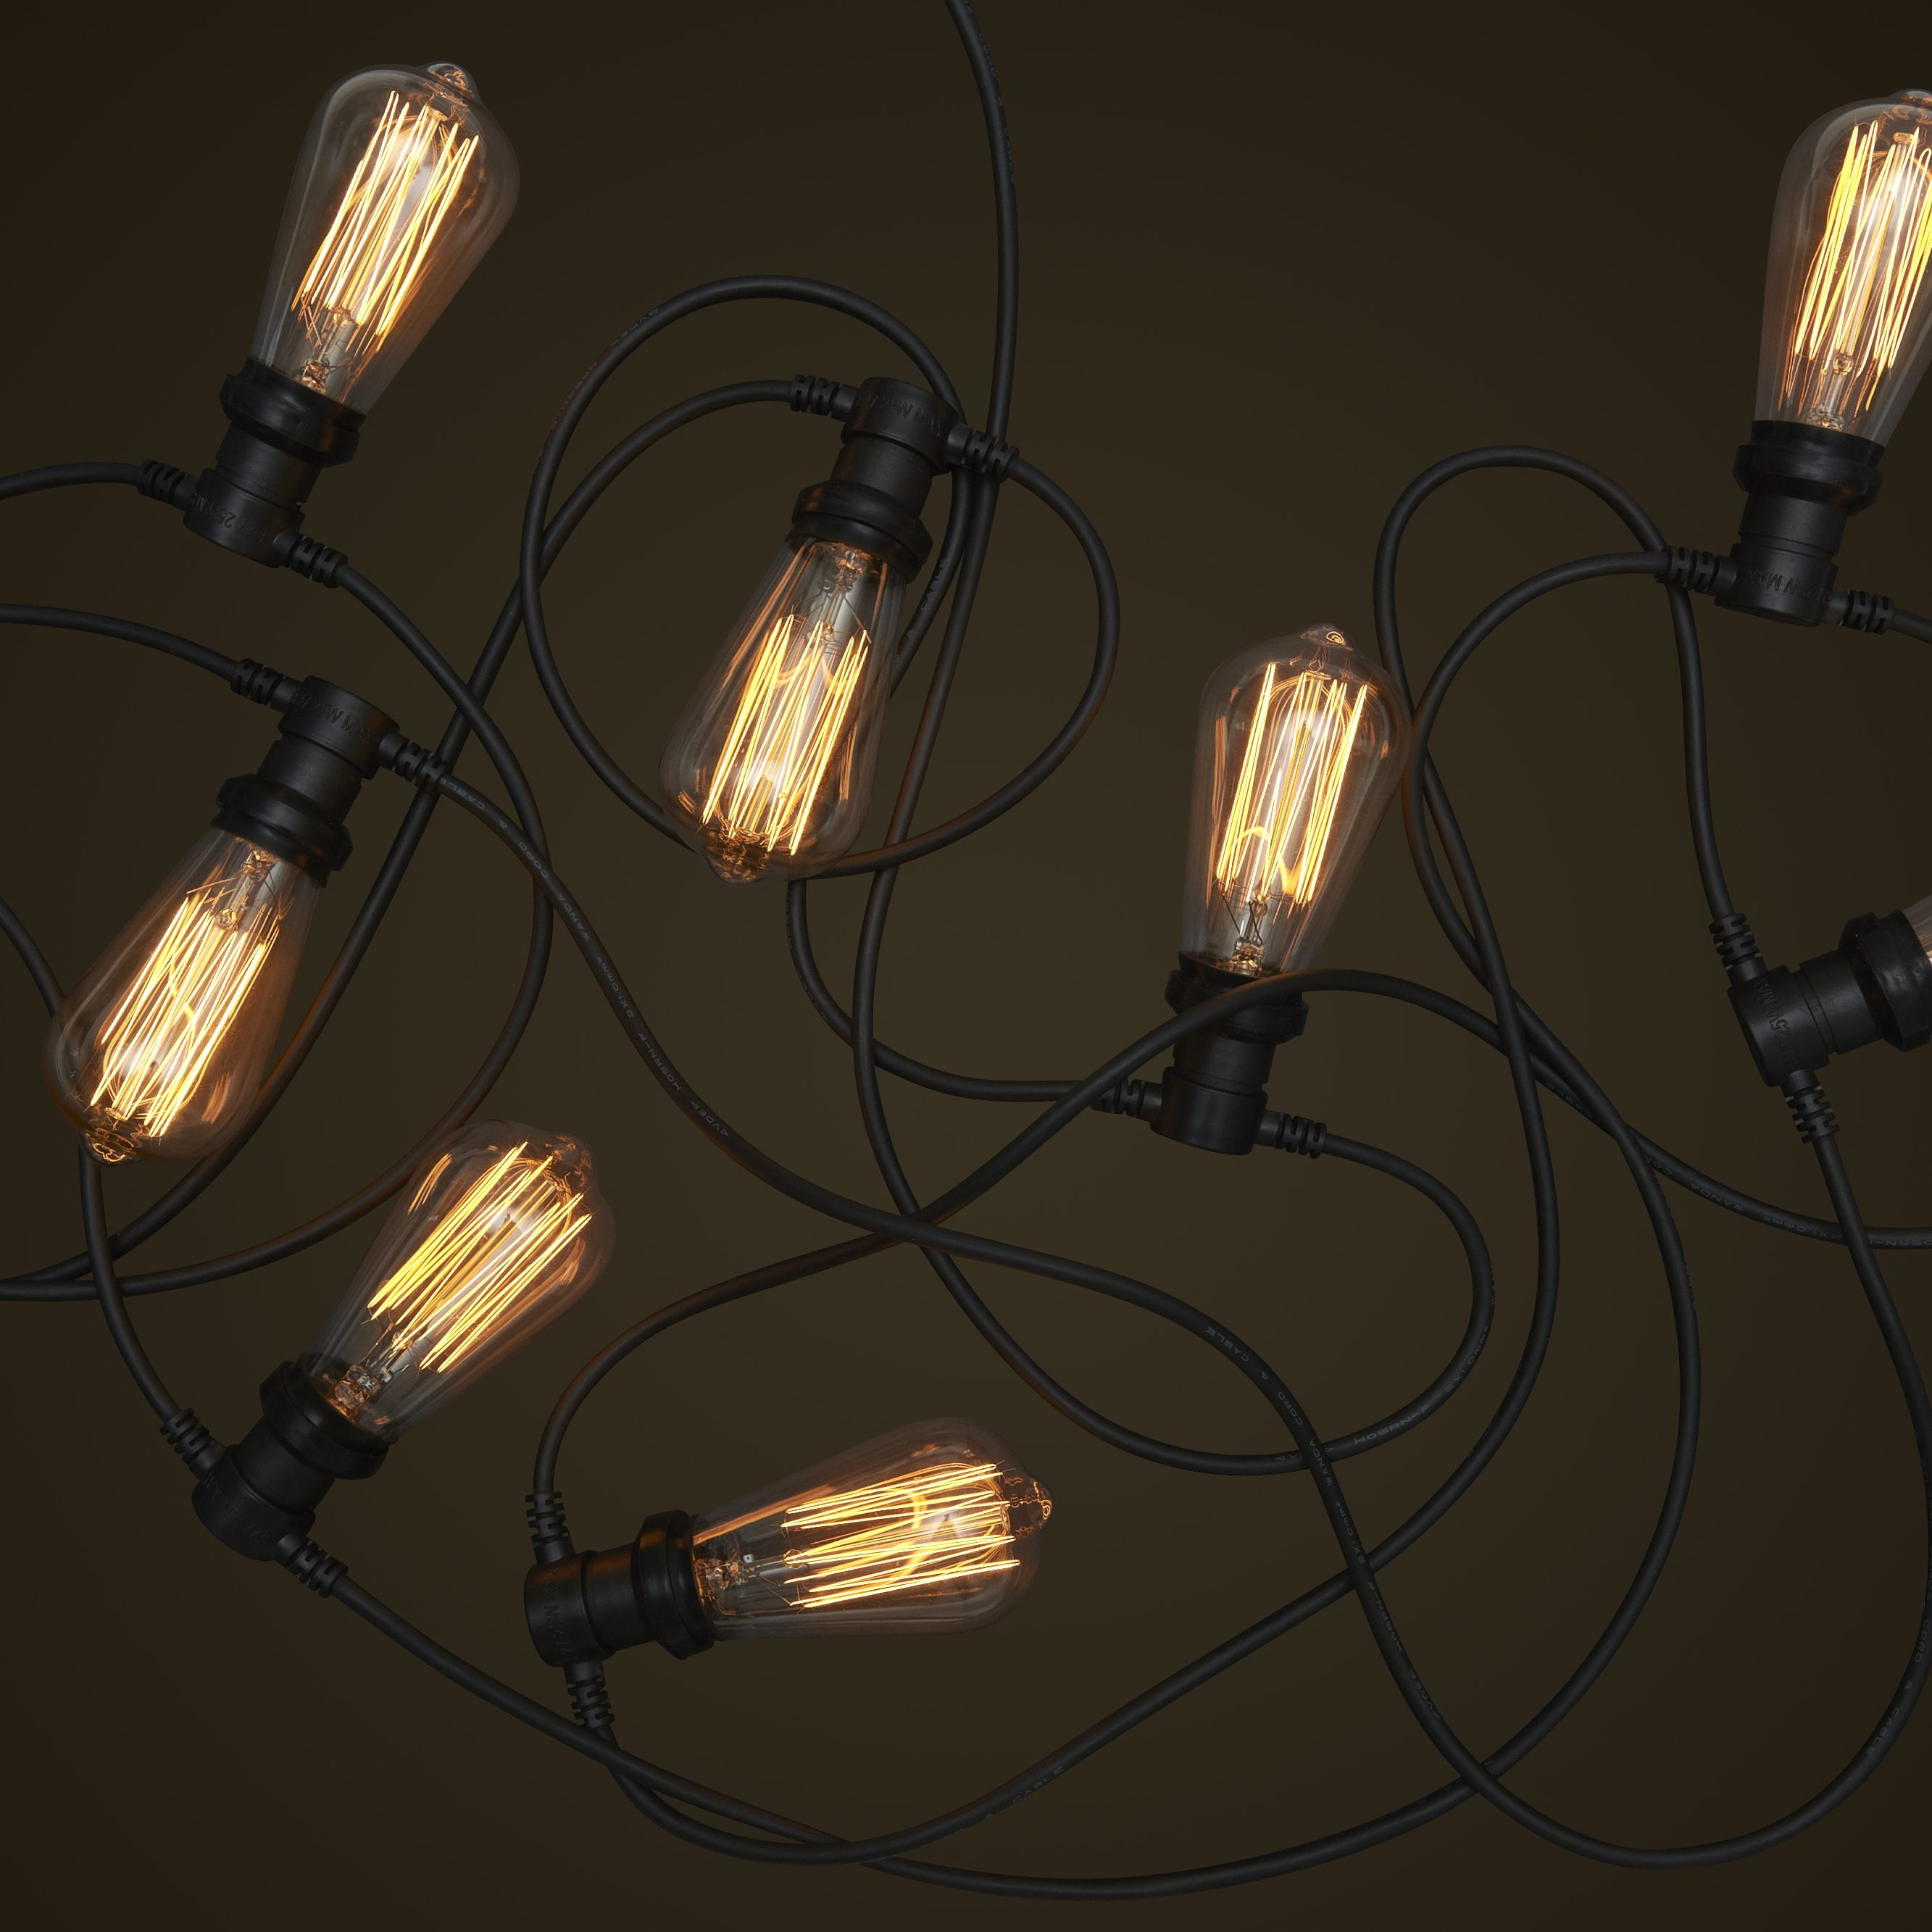 Low Voltage Outdoor Party Lights: Commercial Festoon String Lighting System